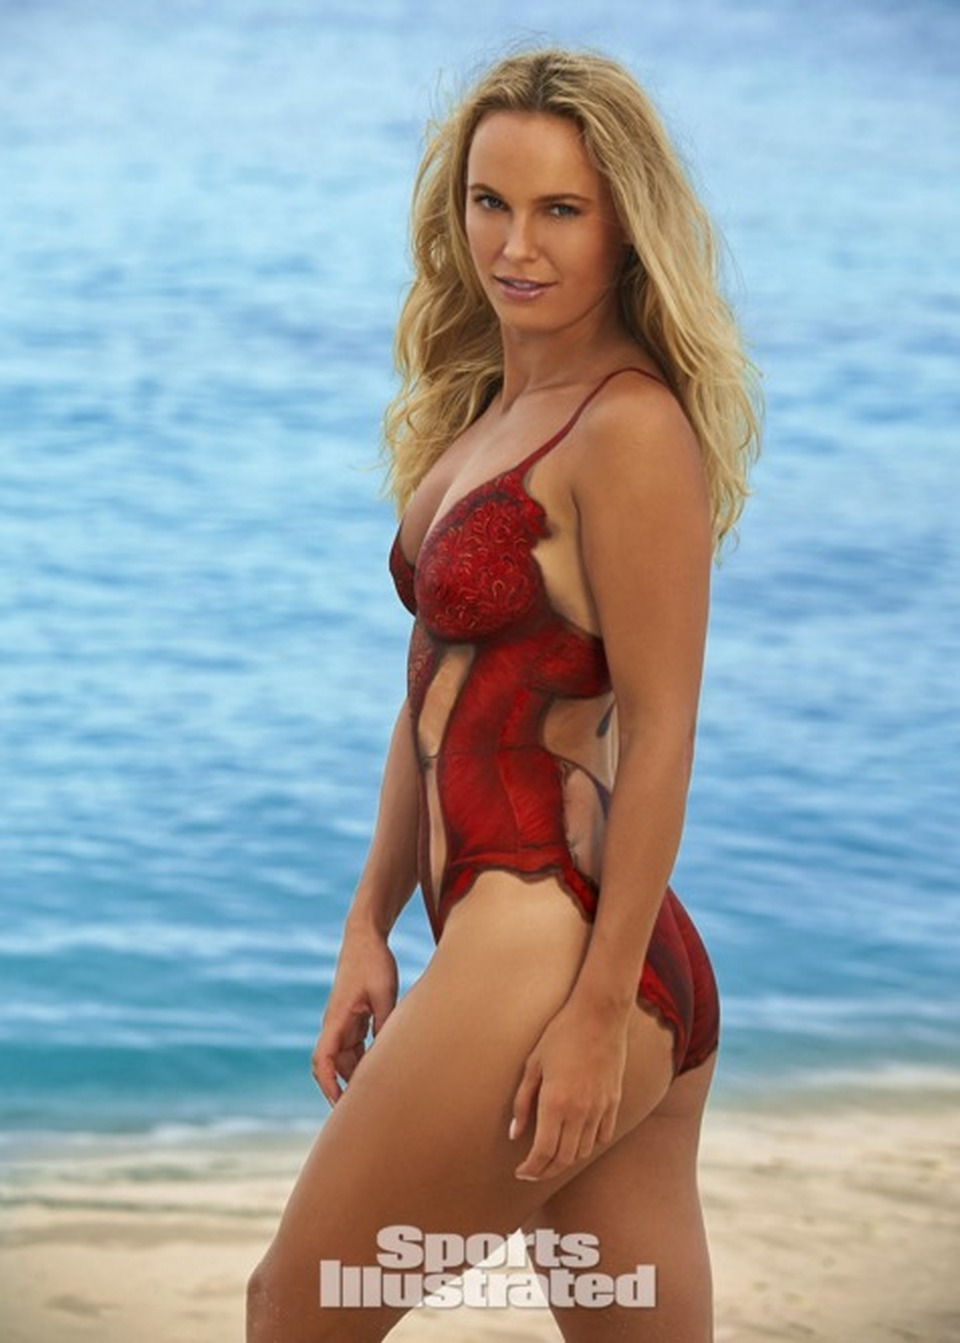 ... Wozniacki, il sexy bodypainting per Sports Illustrated - Leggo.it